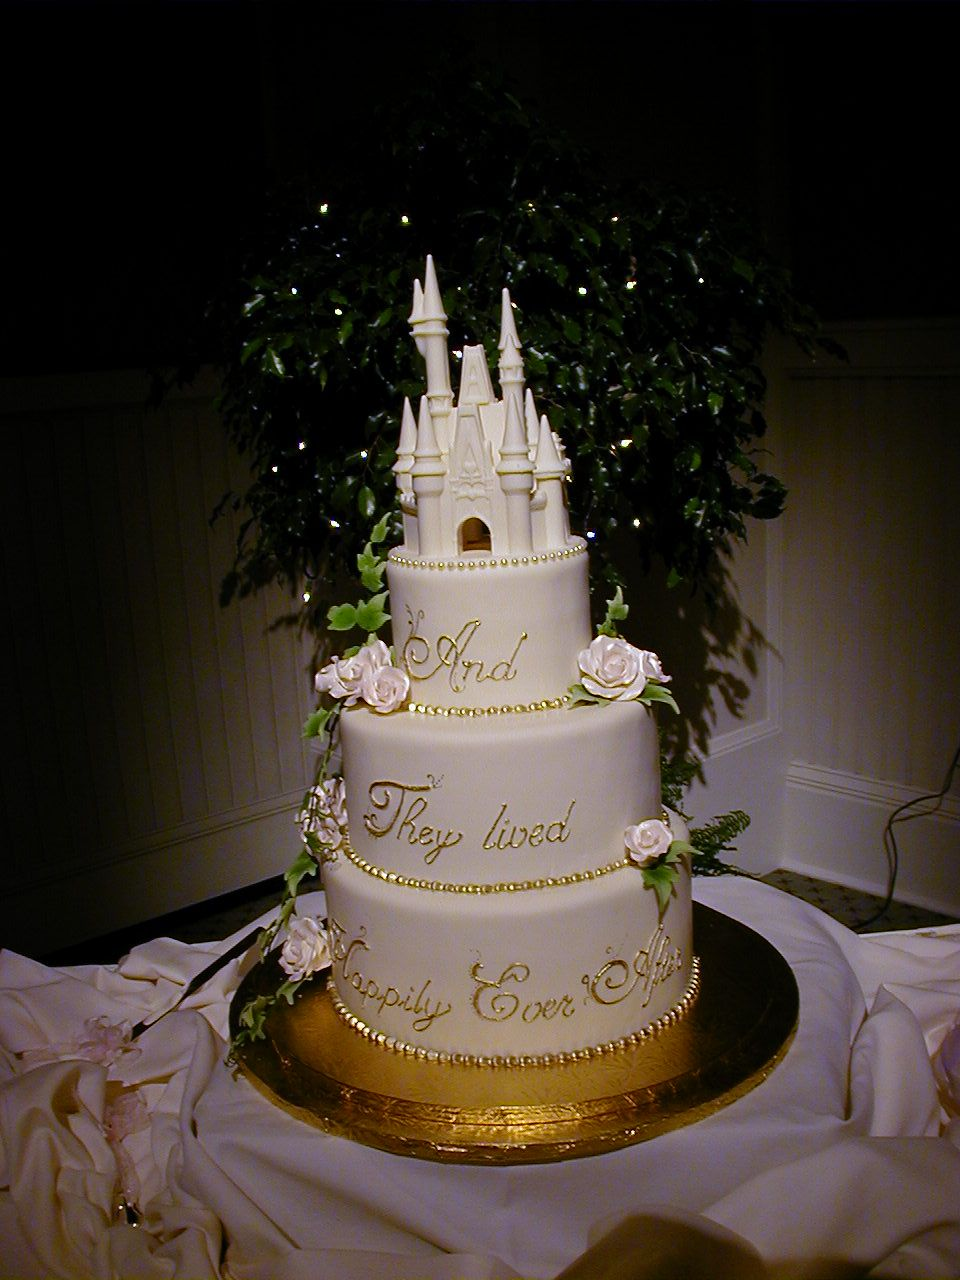 Disney Cake Designs : Disneyland Wedding Dreams: Disney Wedding Cake ideas ...